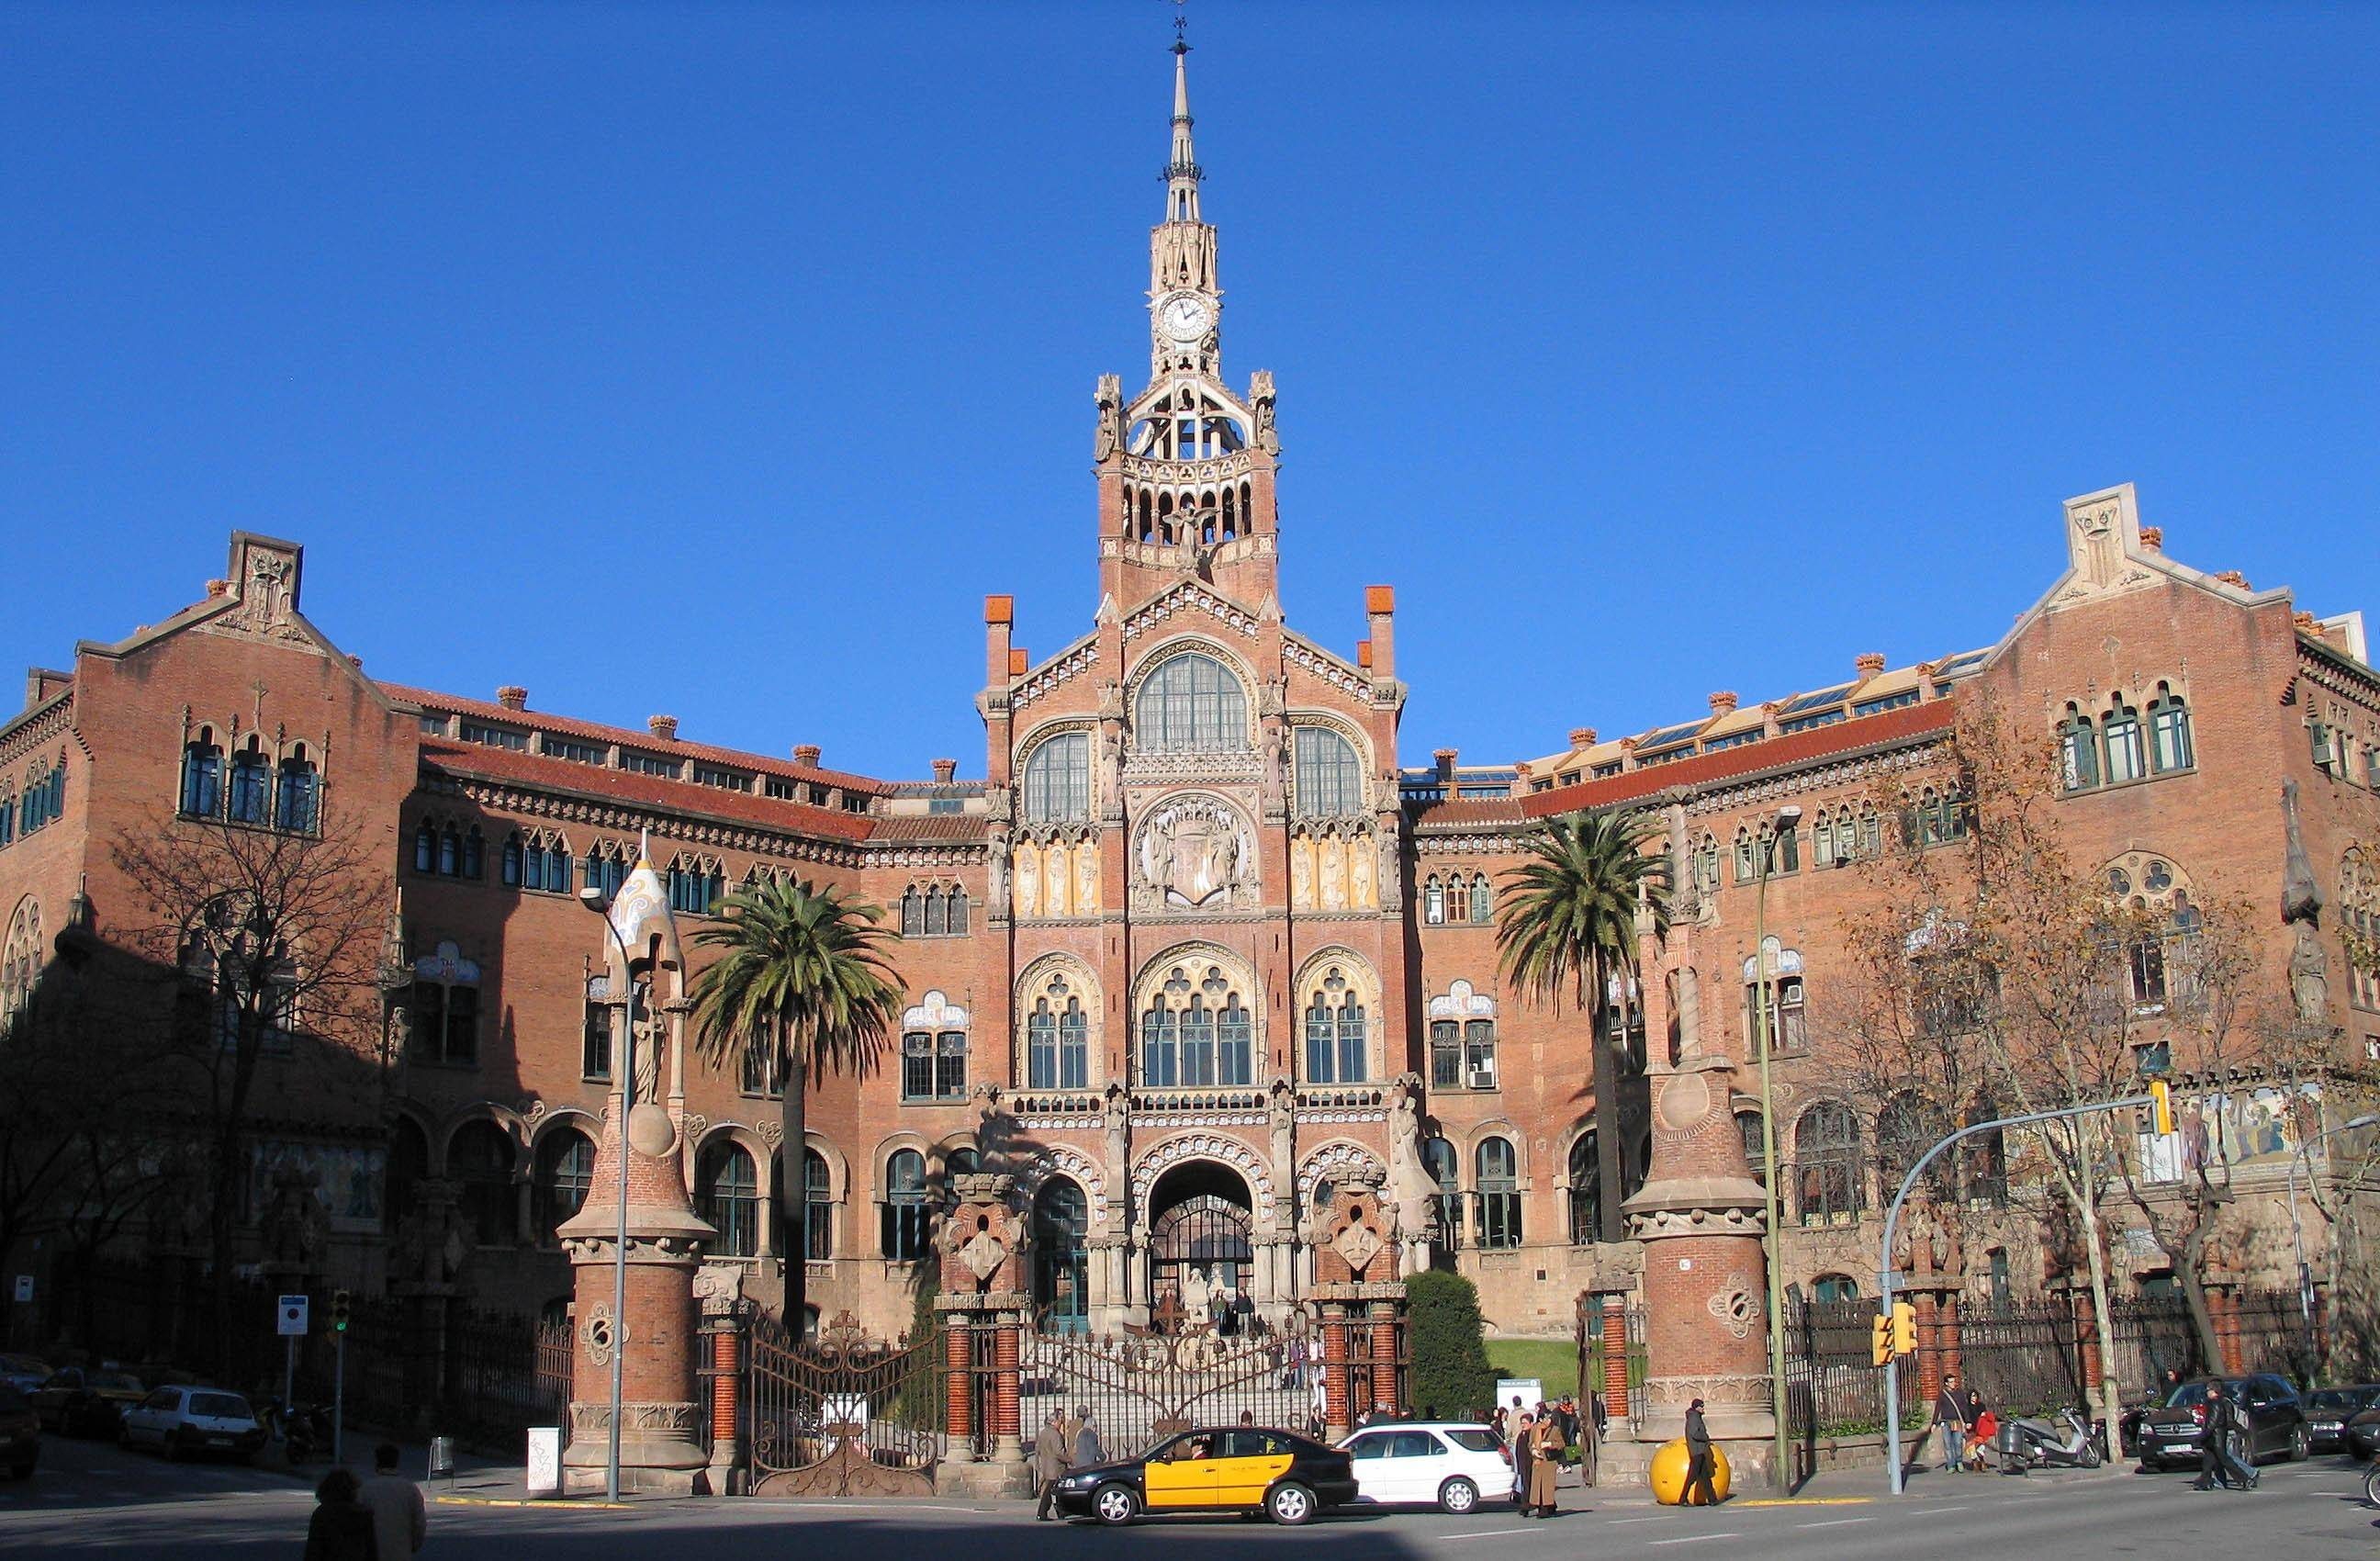 Hotels near Sant Pau Hospital